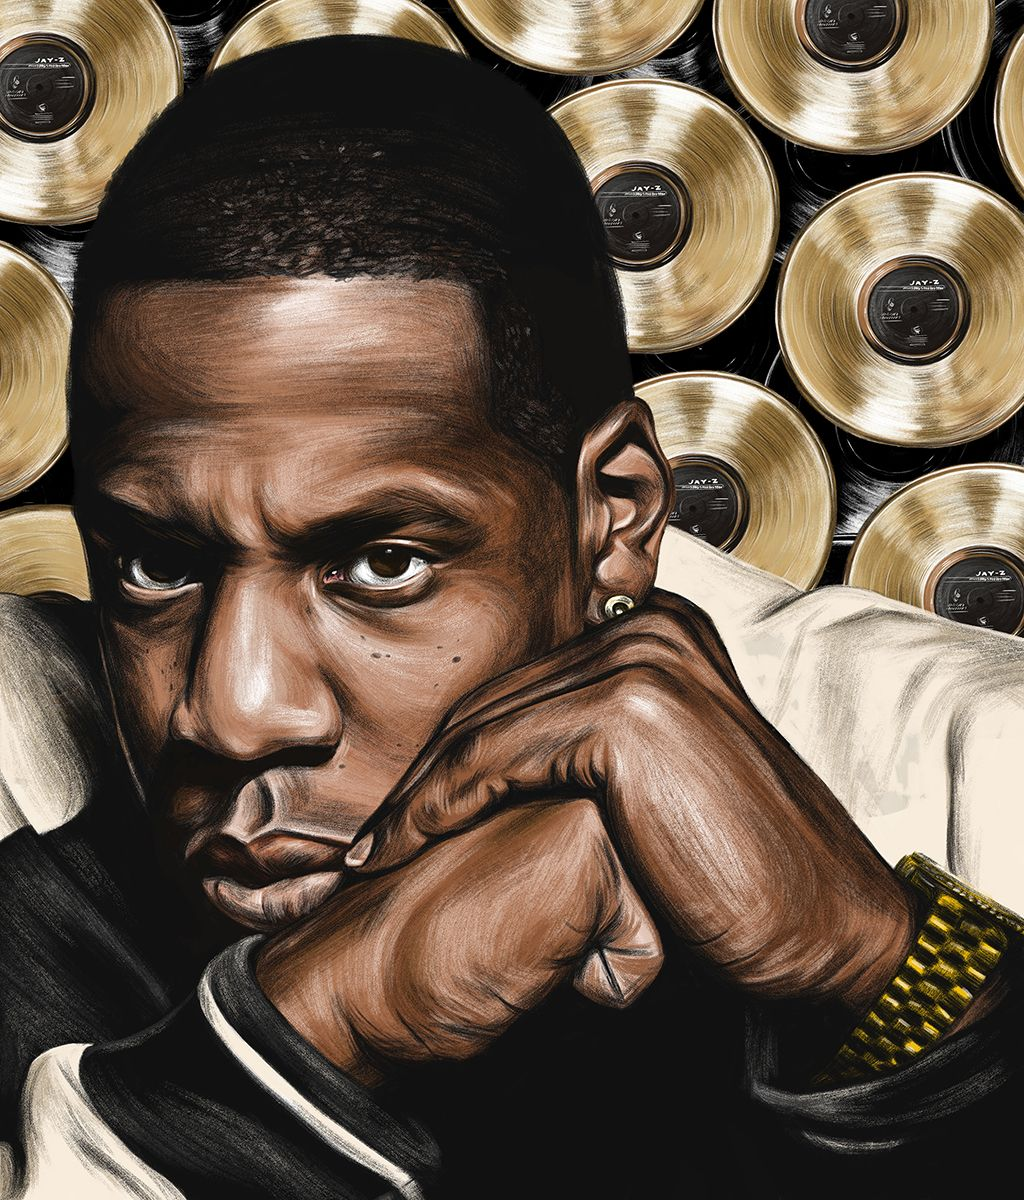 All 274 jay z songs ranked from worst to best malvernweather Choice Image